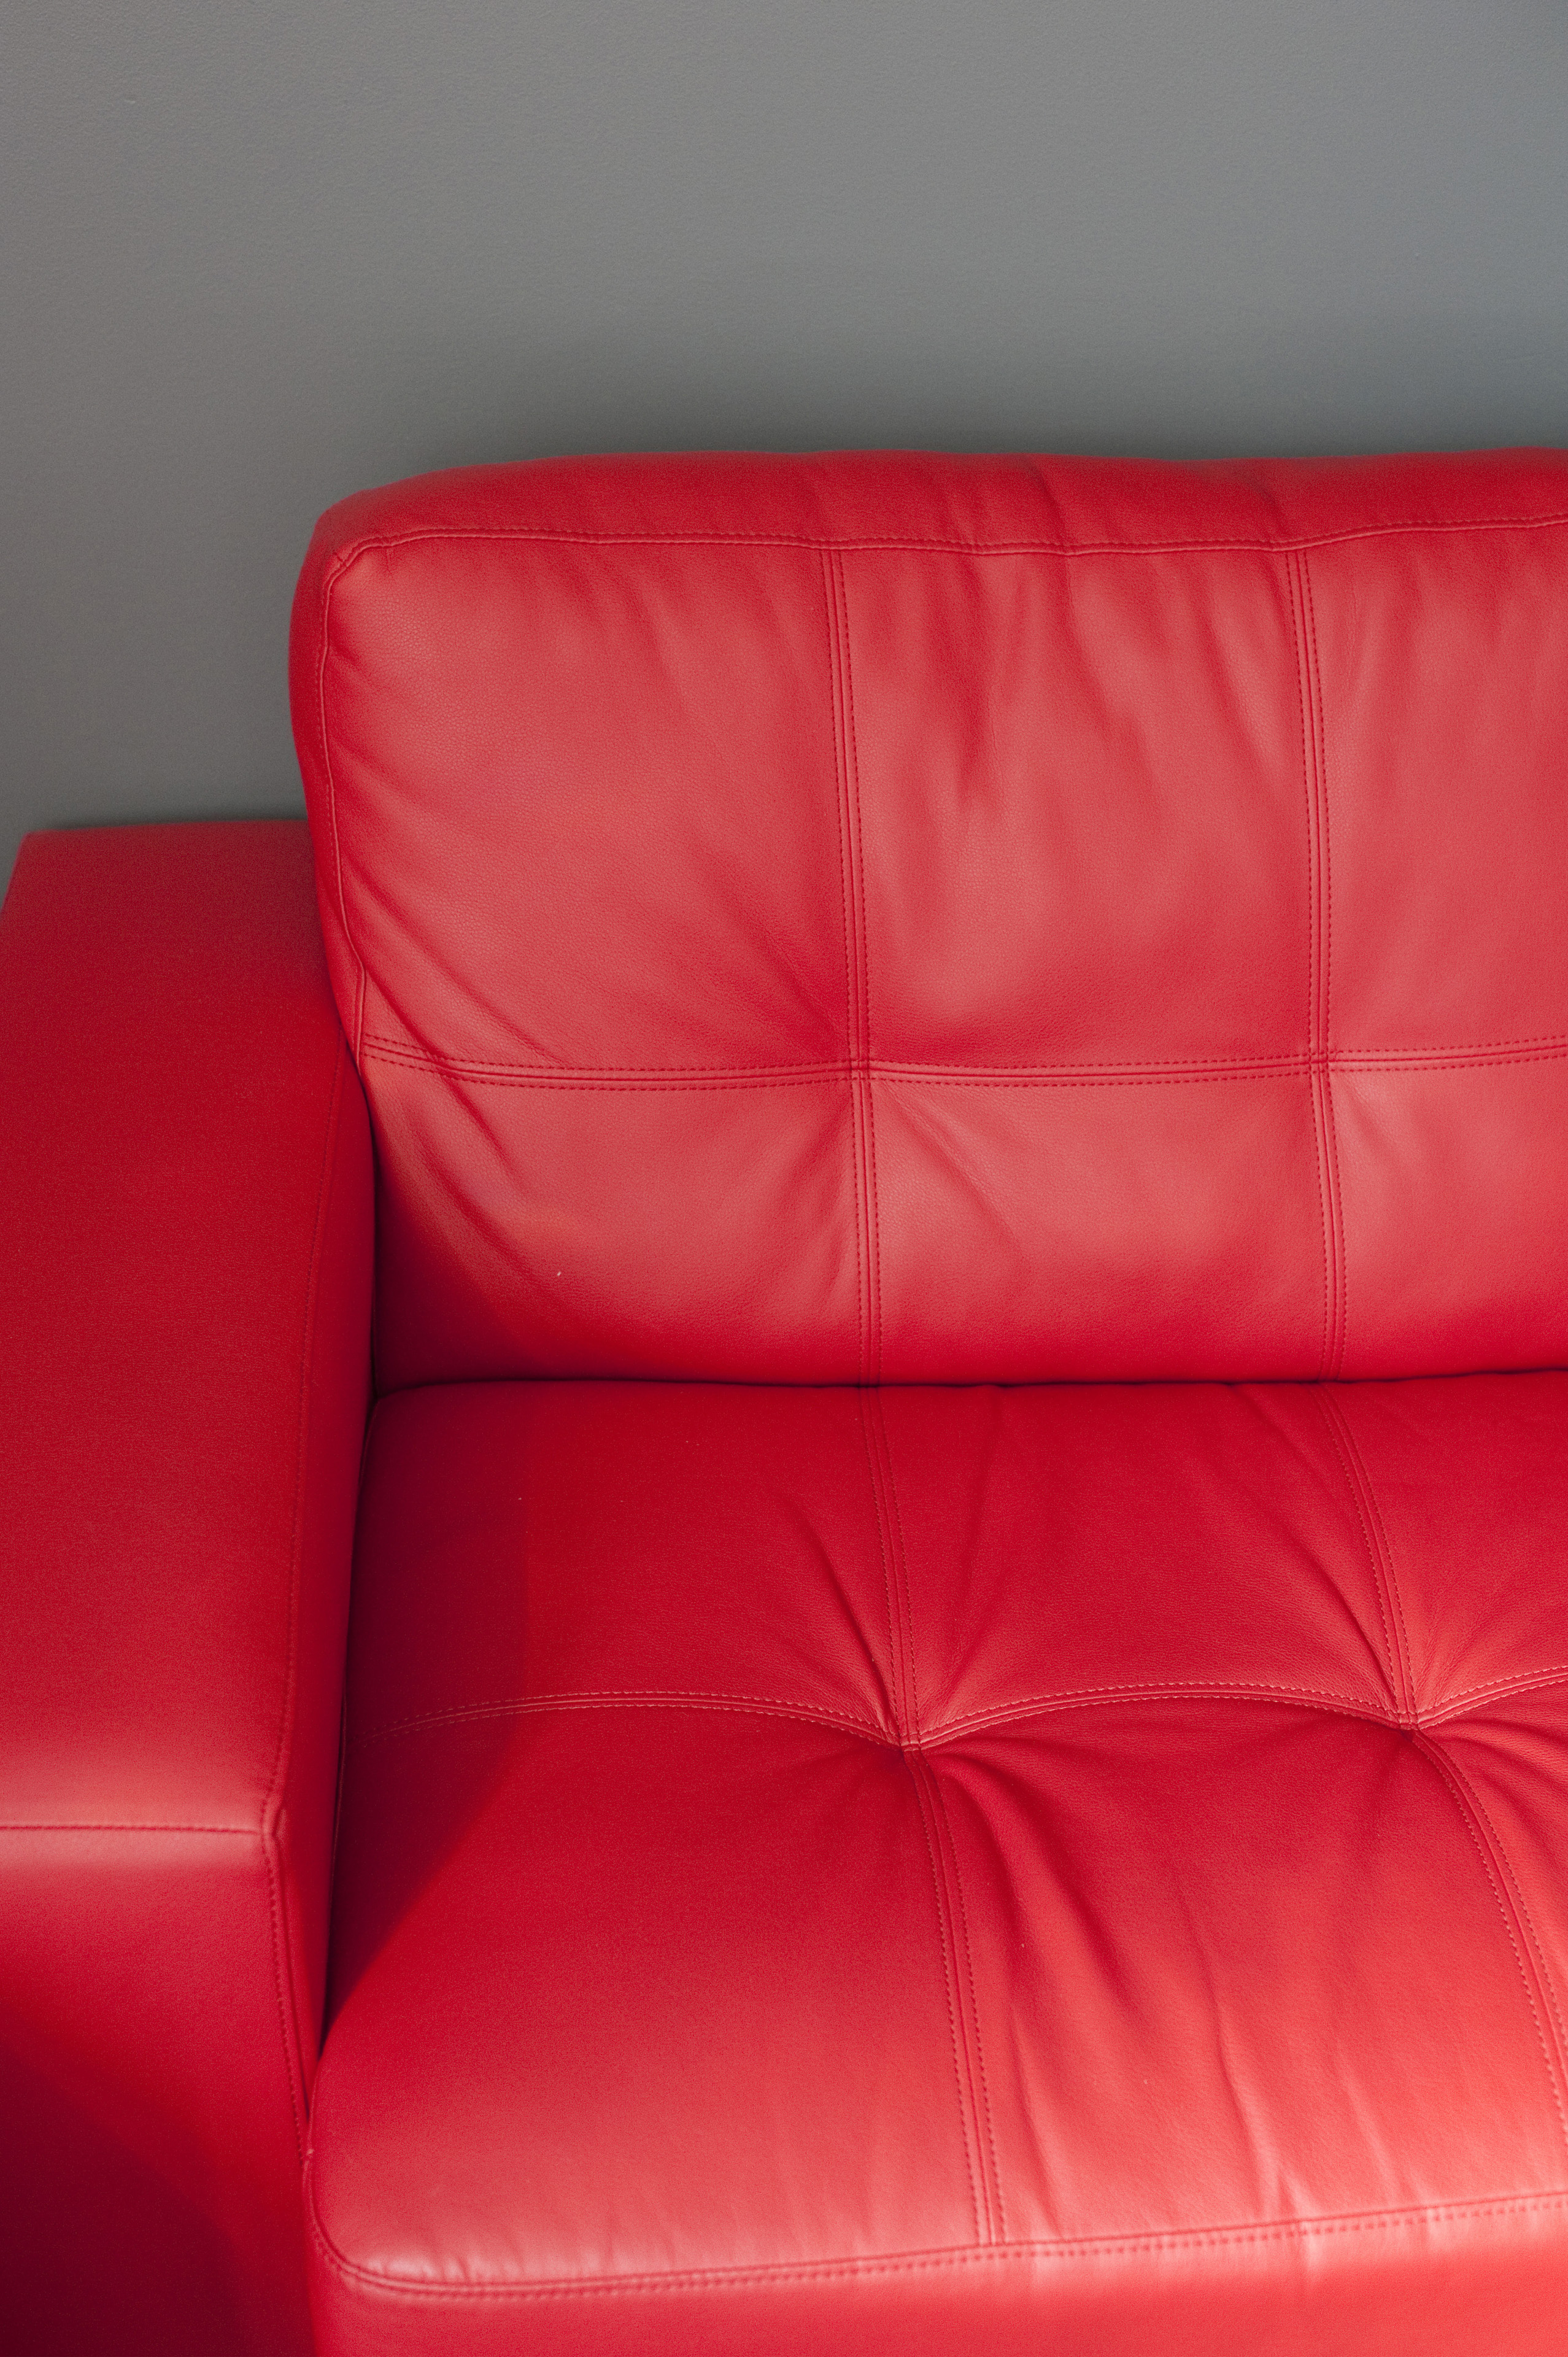 Arm and portion of a comfortable red leather upholstered settee on a grey wall, closeup detail